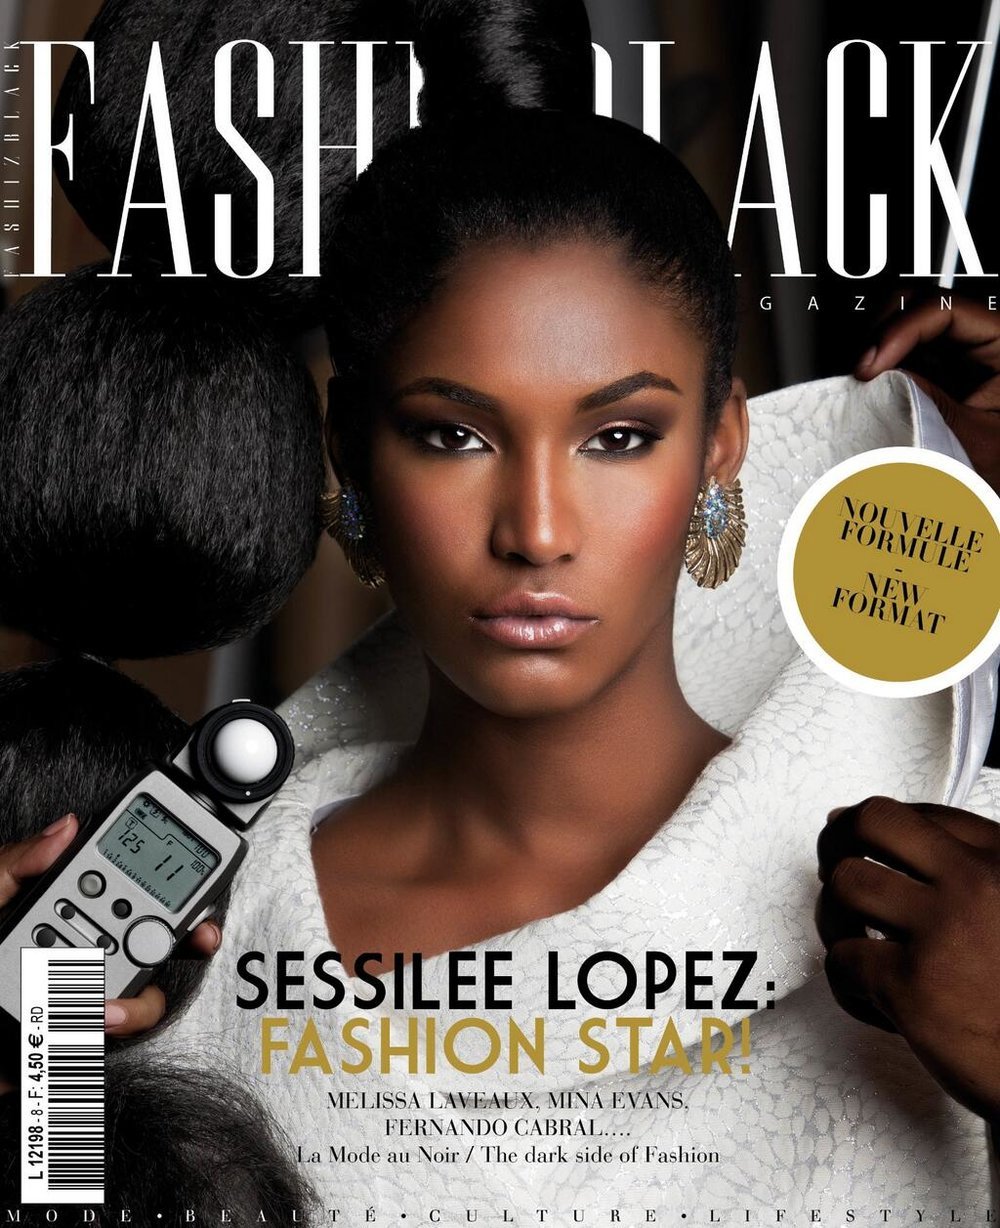 FASHIZBLACK MAGAZINE (SEPT/OCT 2013)